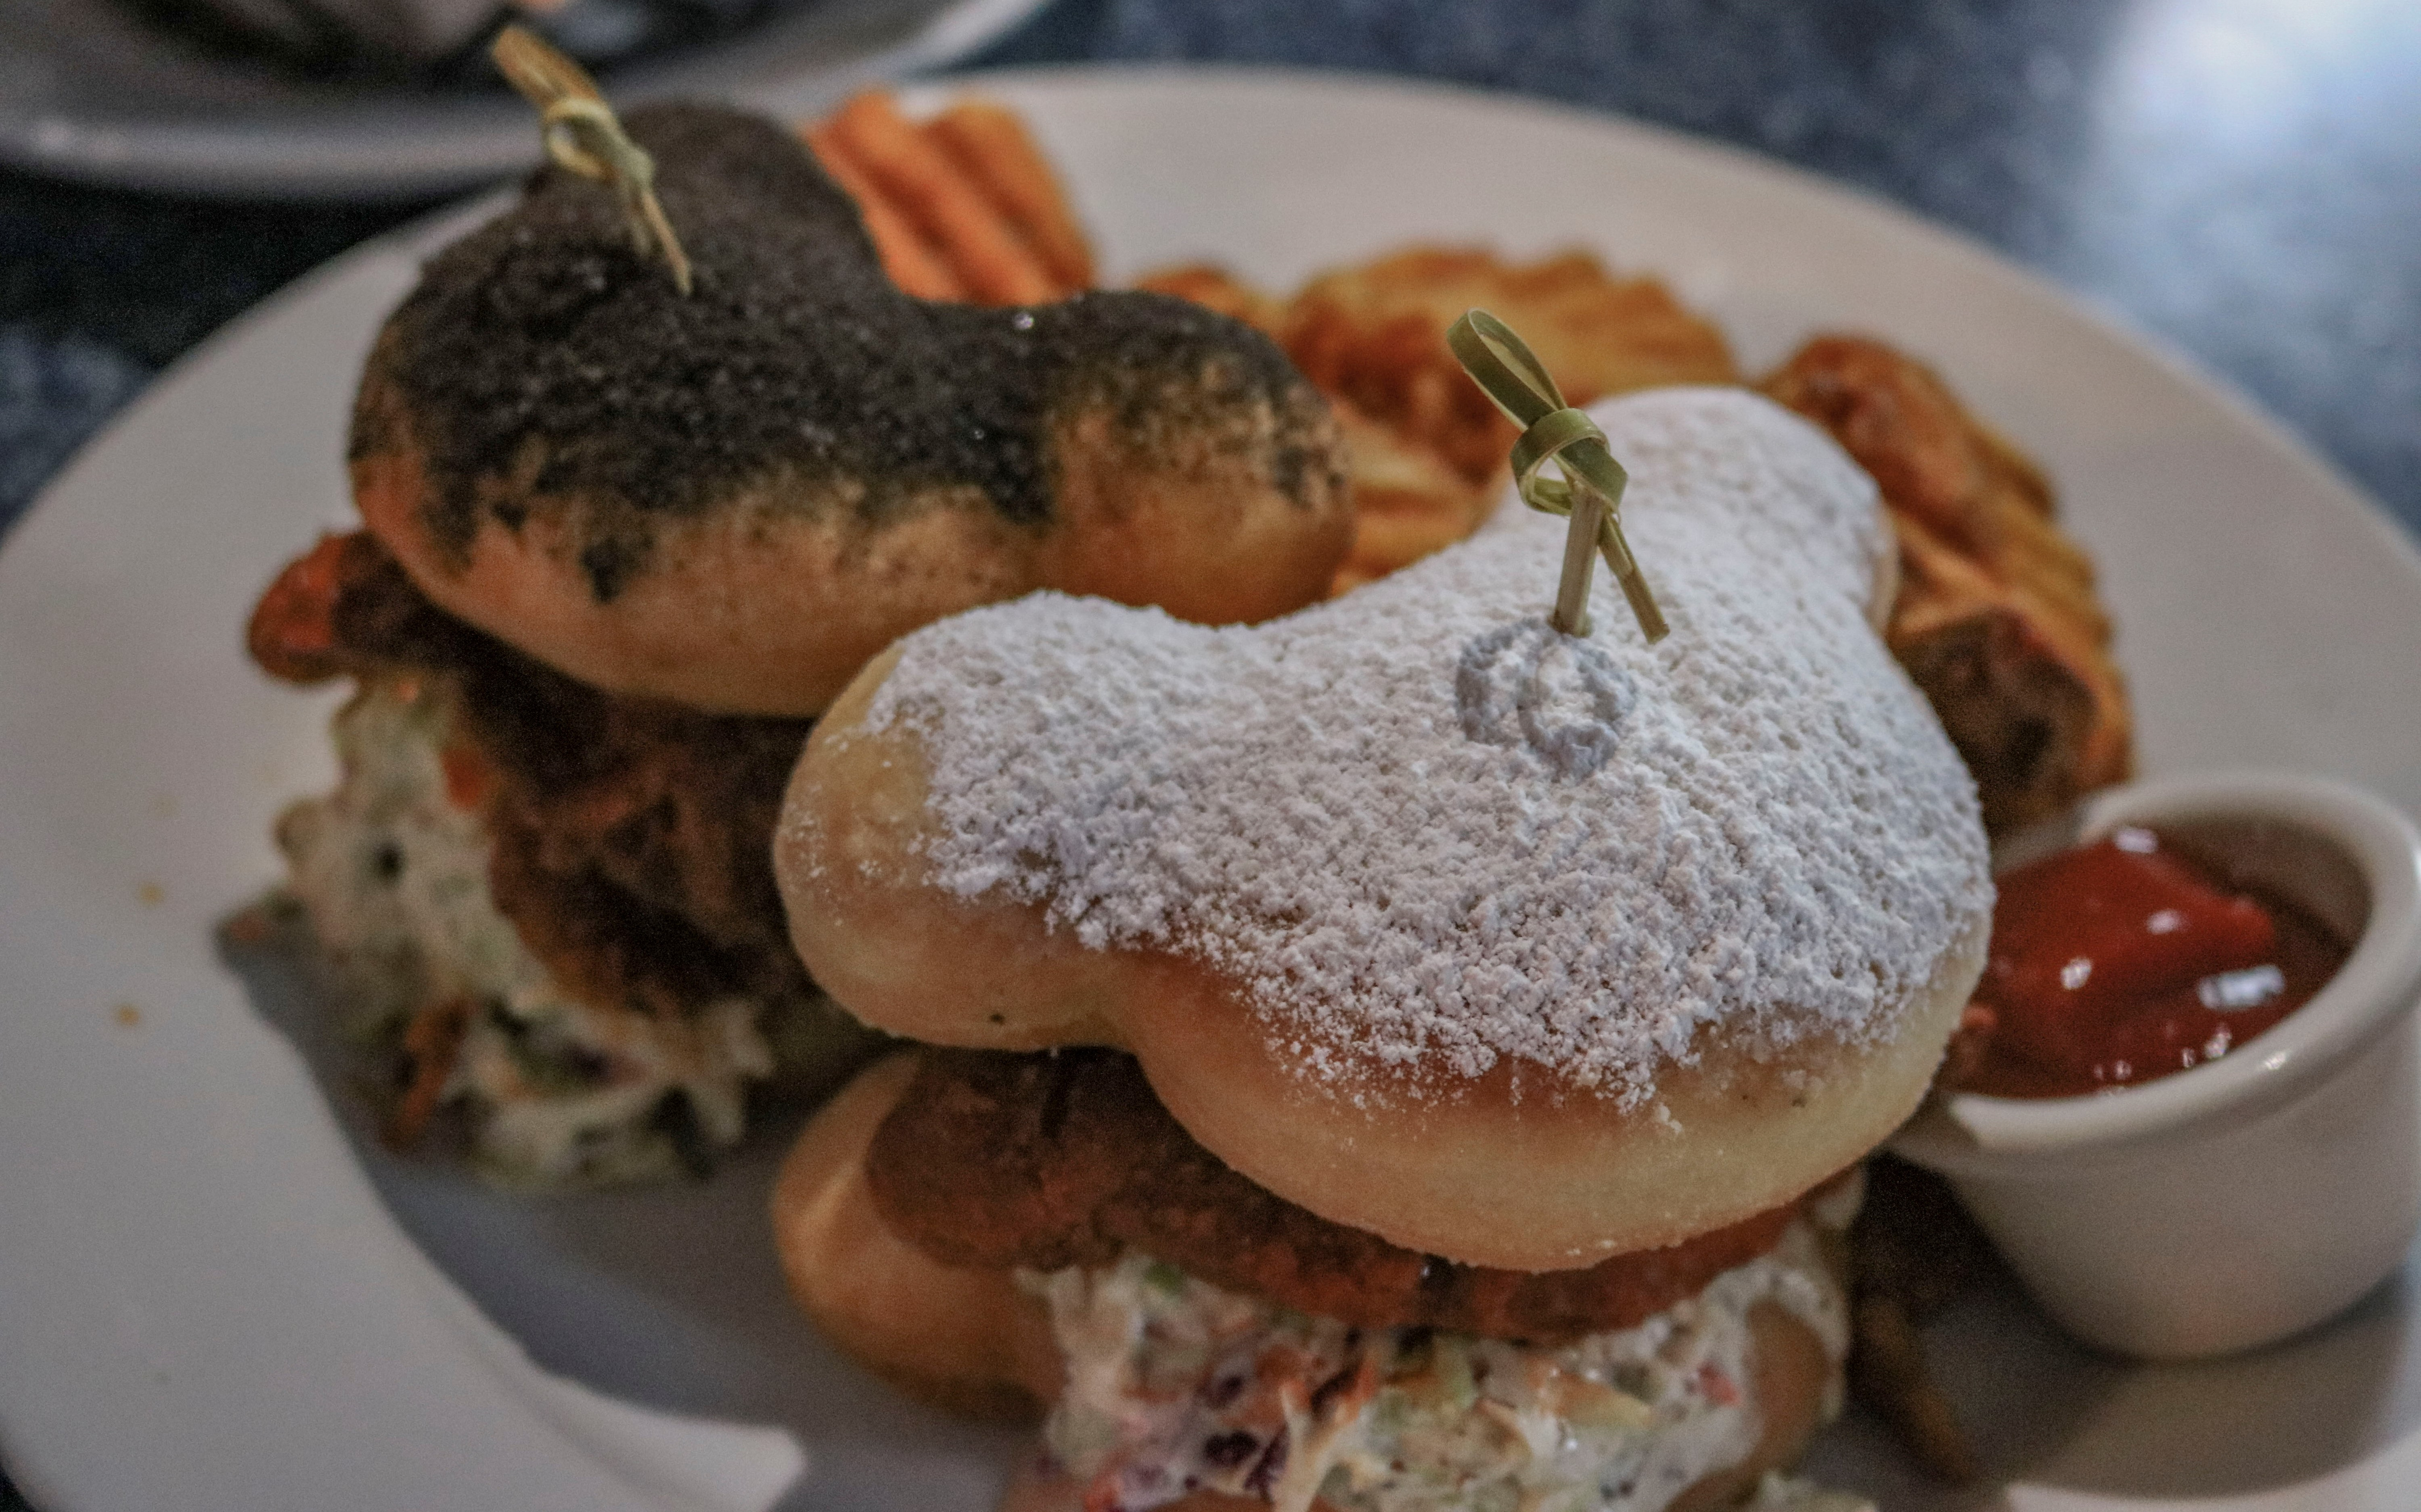 Later on, I discovered the incredibly tasty Mickey Beignet sandwich plate from Cafe Orleans. It takes the best of both worlds and brings the sweet and savory of buffalo chicken and baked beignets together in a heavenly meal that is perfect to share!